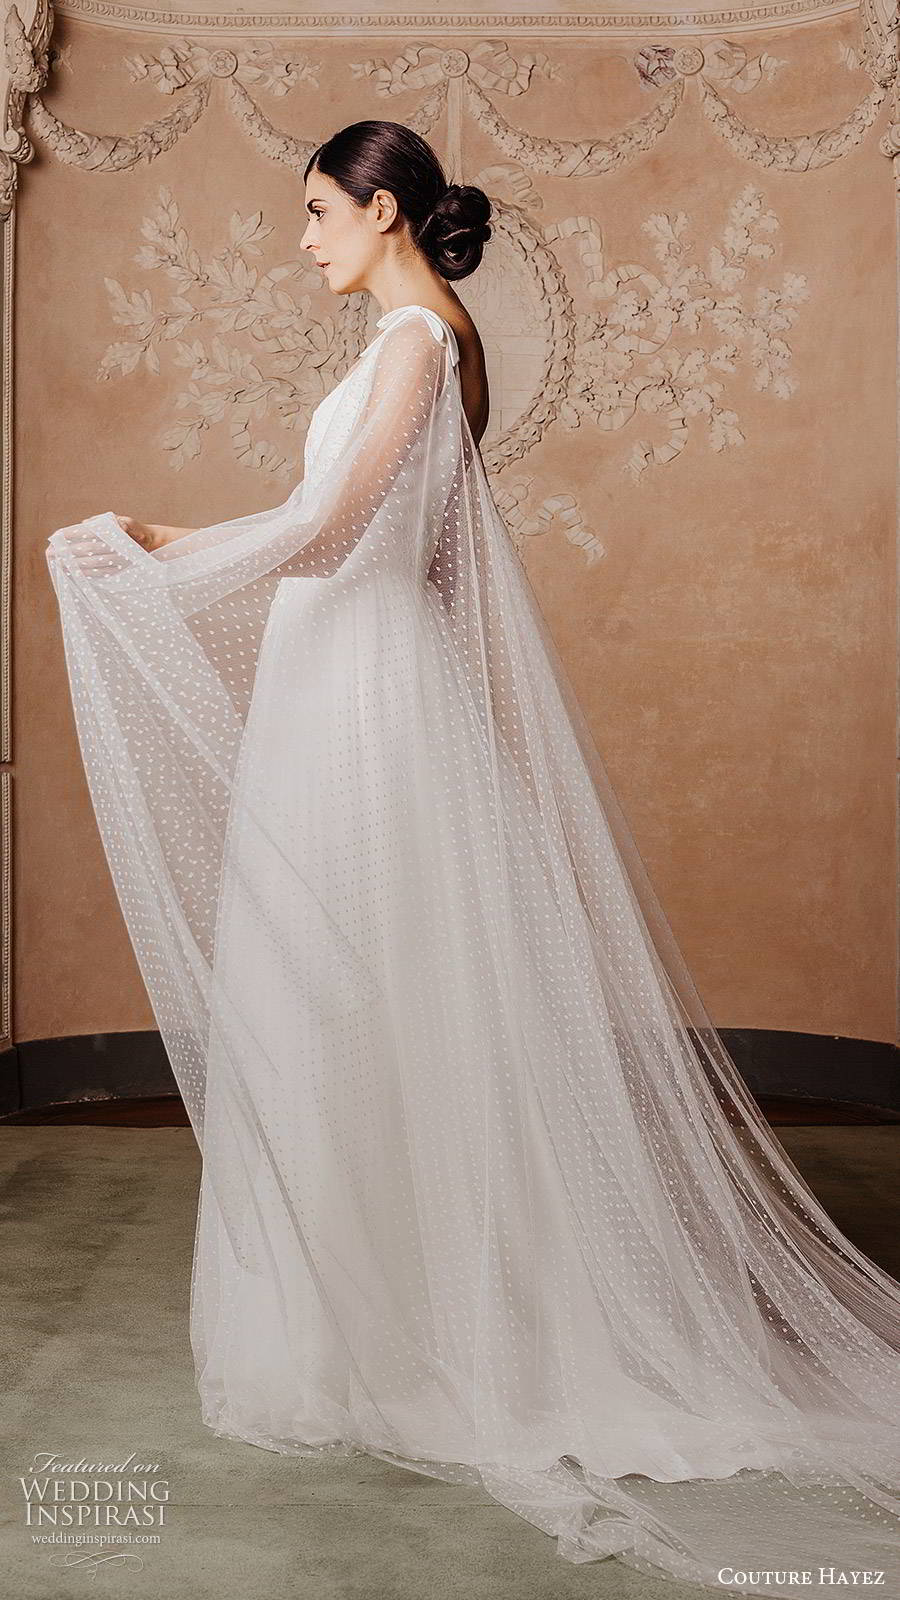 couture hayez 2020 bridal sleeveless thick straps semi sweetheart embellished bodice ball gown a line wedding dress (6) elegant romantic v back chapel train sheer cape sv